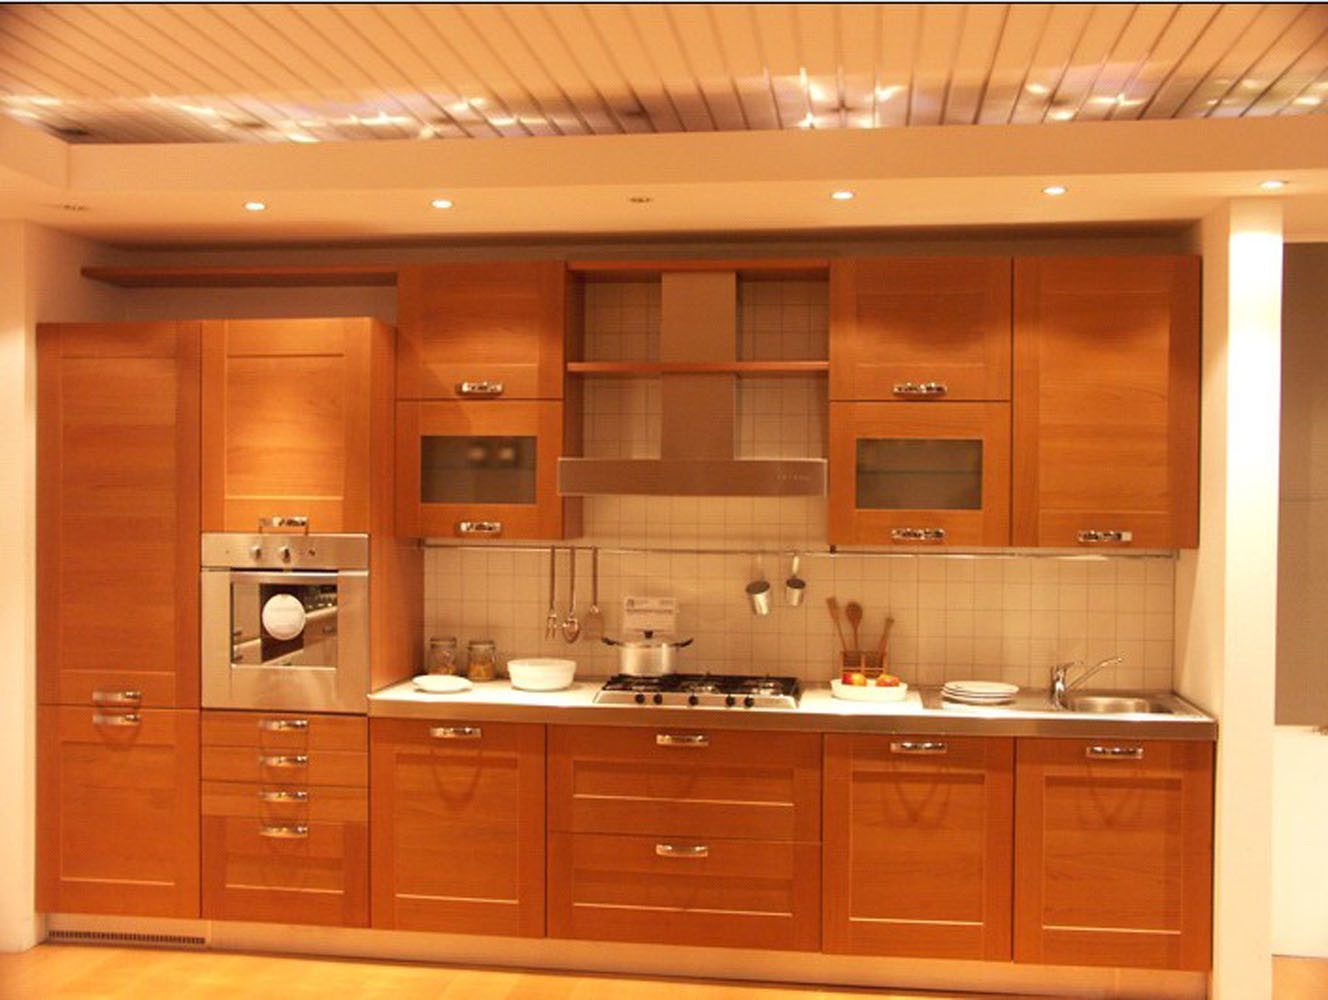 Shaker style kitchen afreakatheart for Shaker style kitchen cabinets